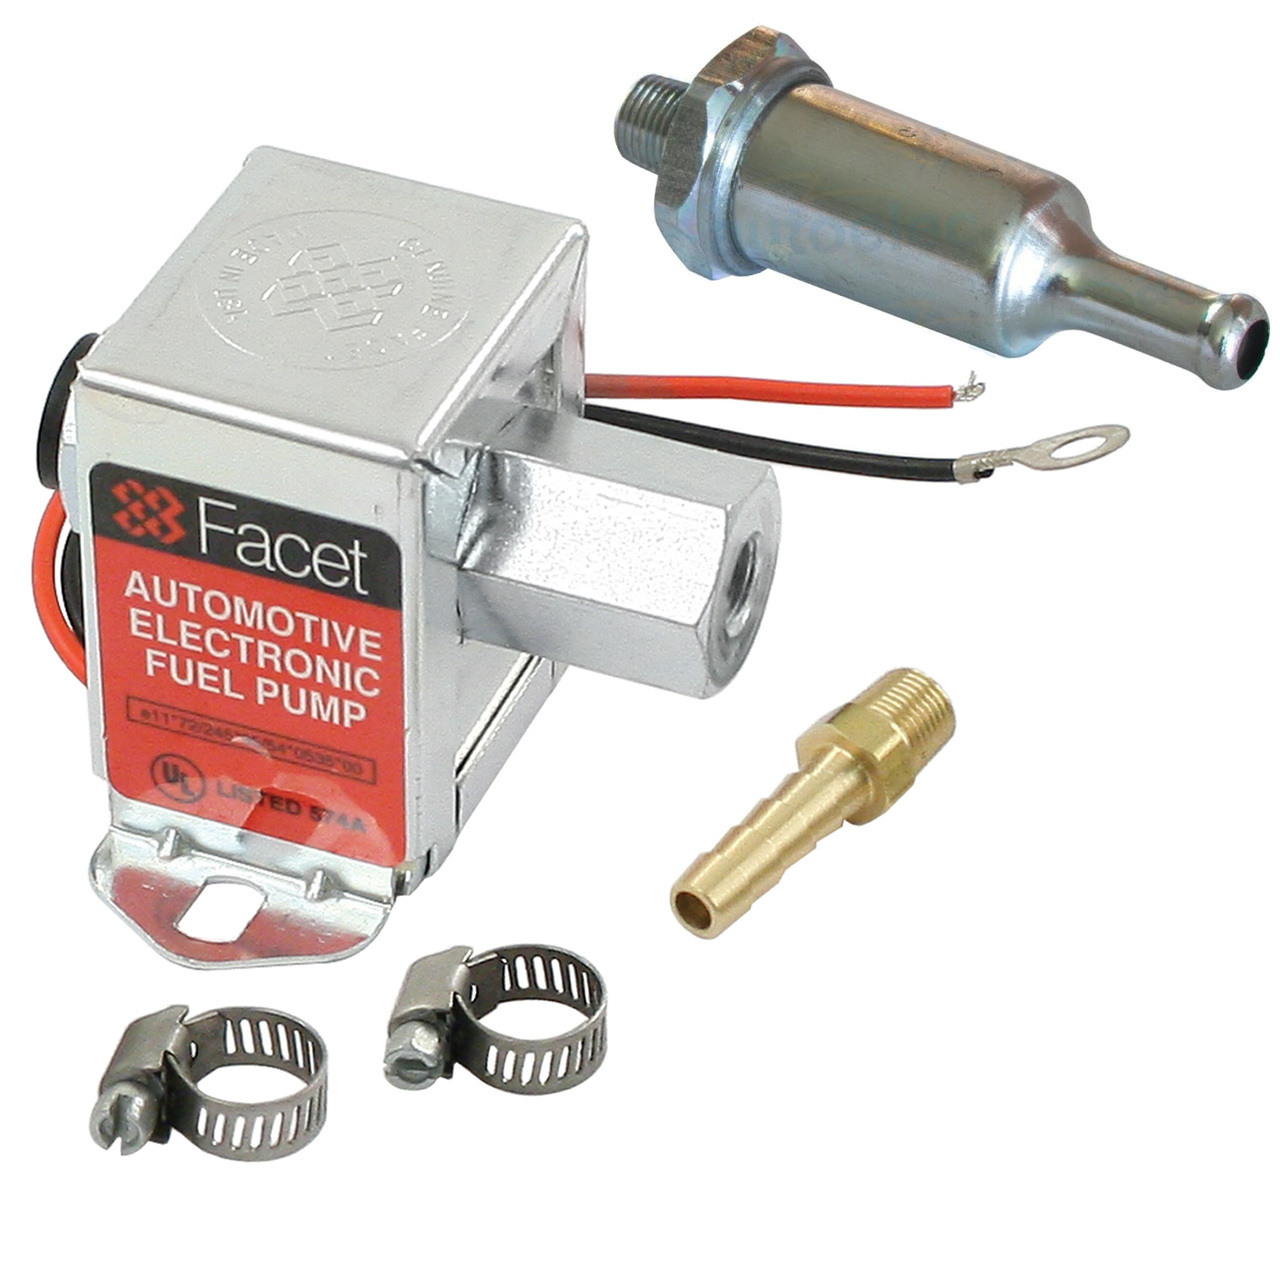 facet fep42sv cube electric fuel pump 1 5-4 psi, includes clamps/fittings/ filter